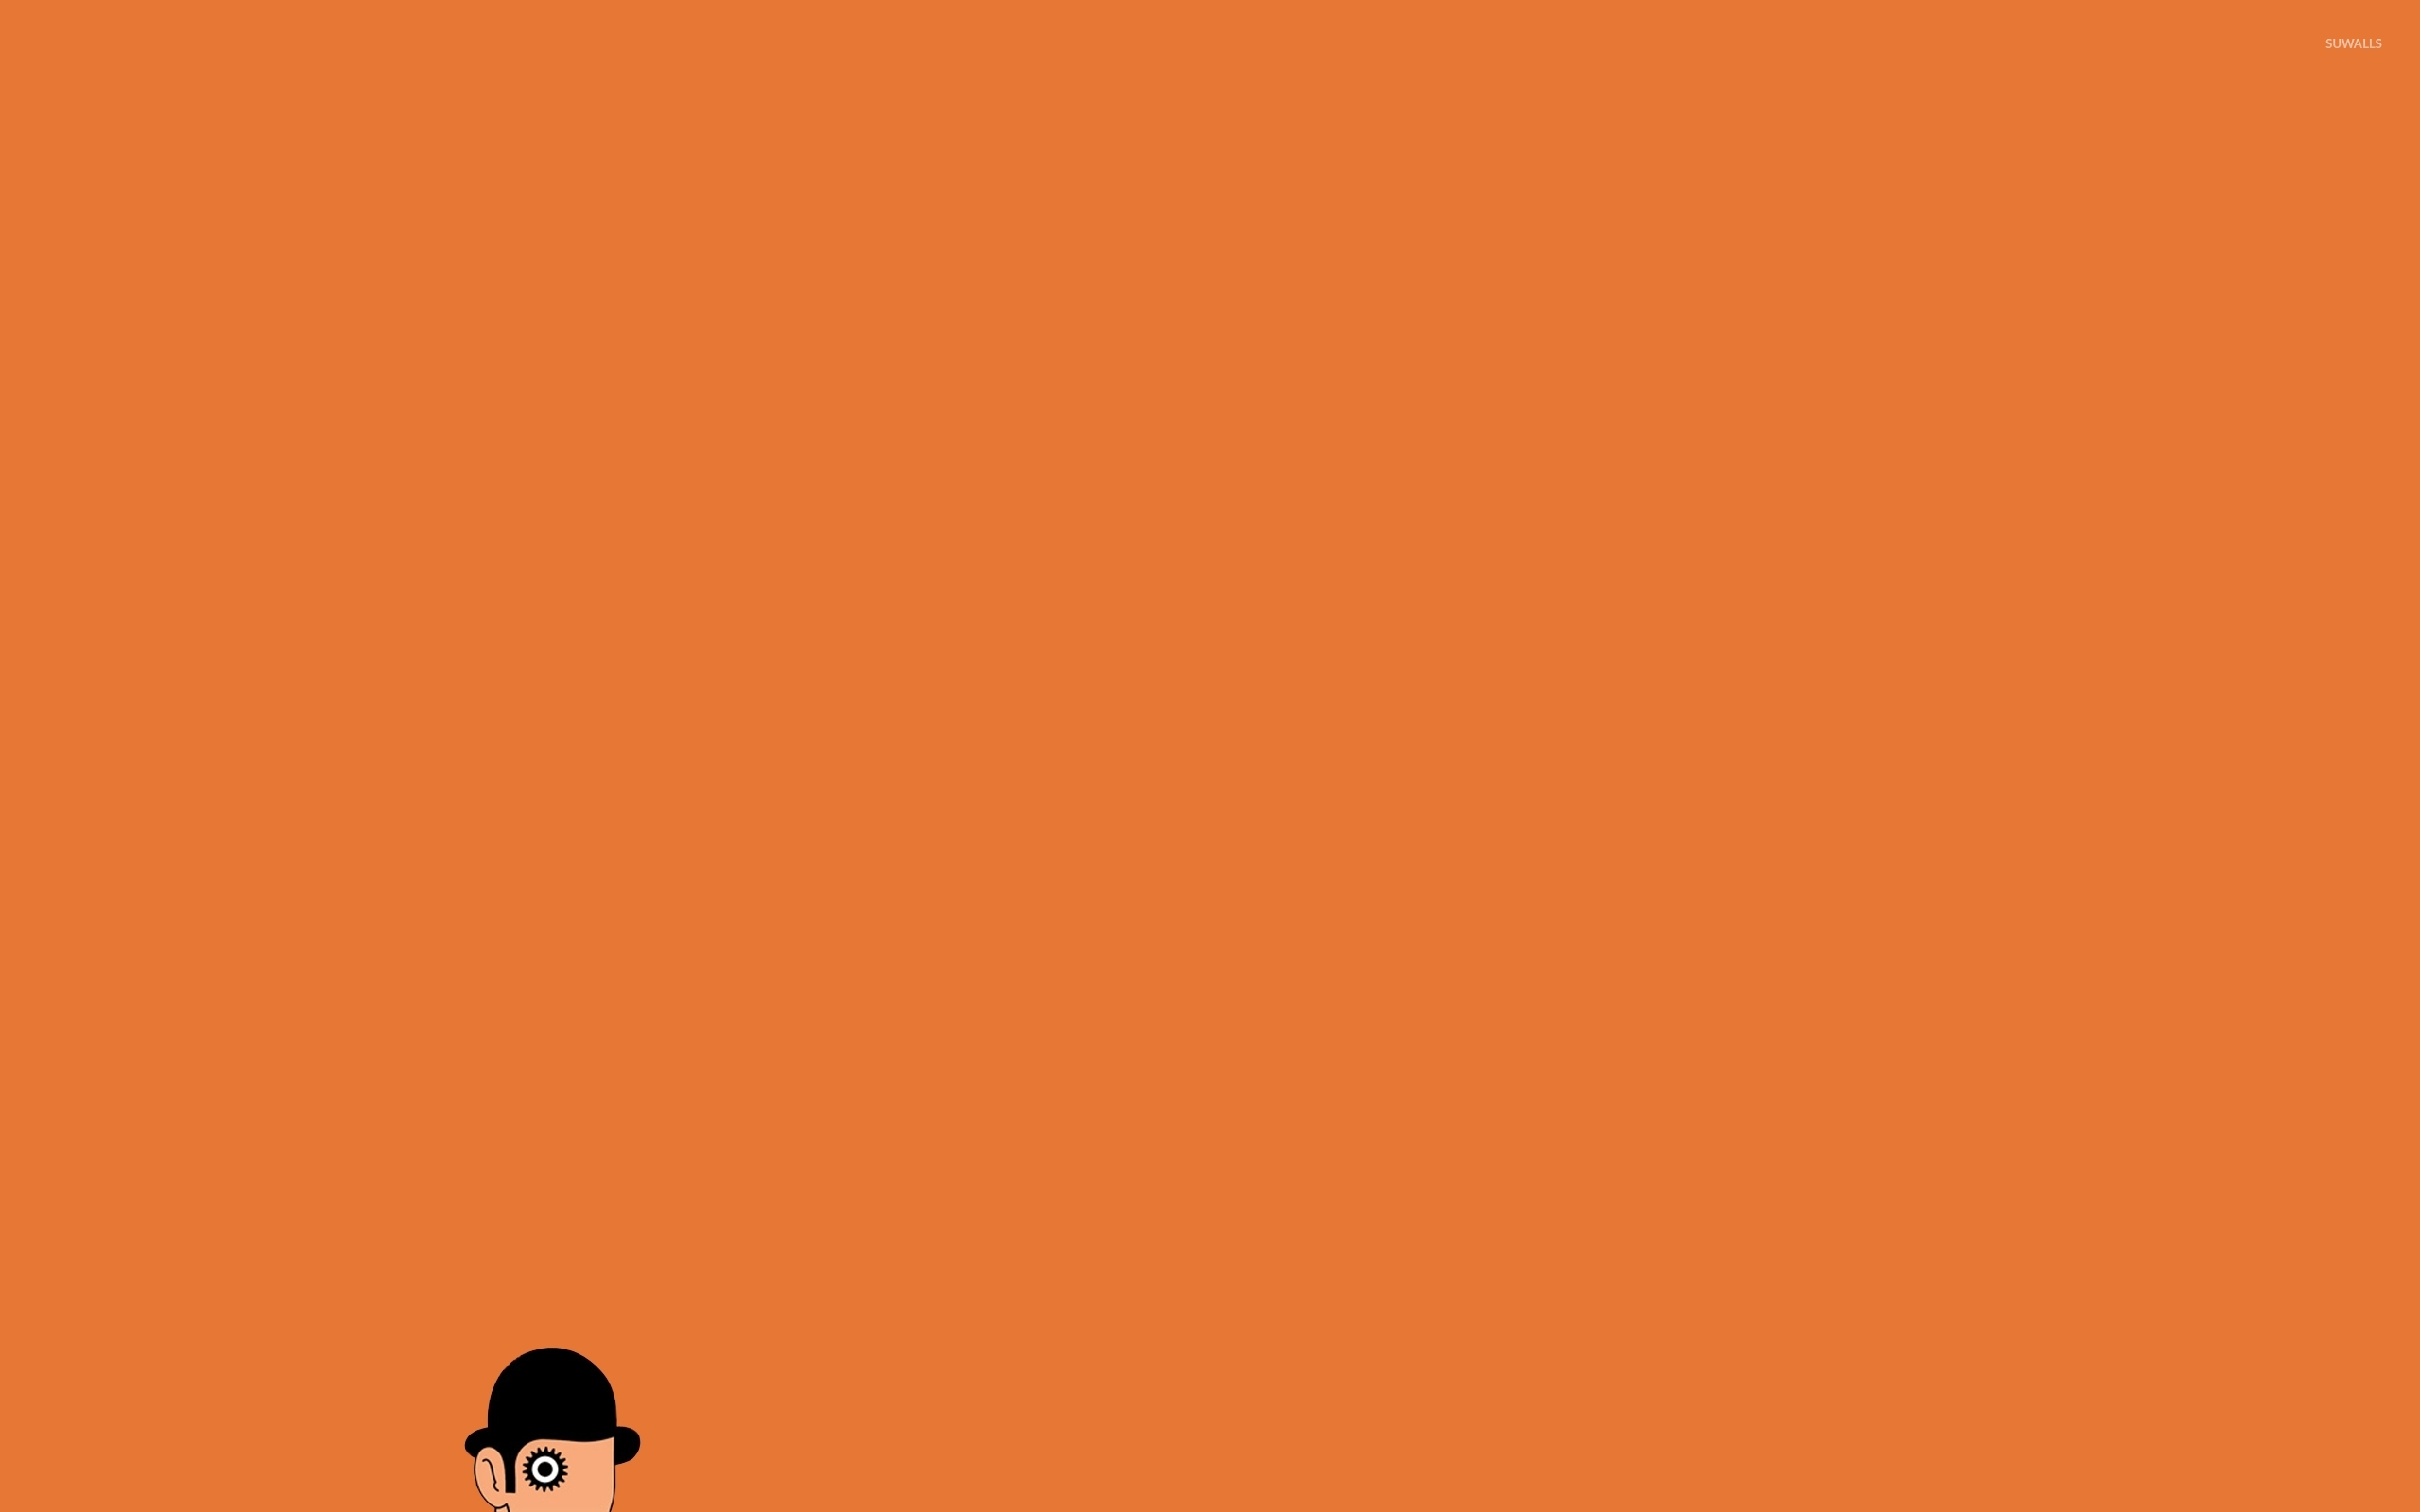 A Clockwork Orange wallpaper - Minimalistic wallpapers ... A Clockwork Orange Wallpaper 1920x1080